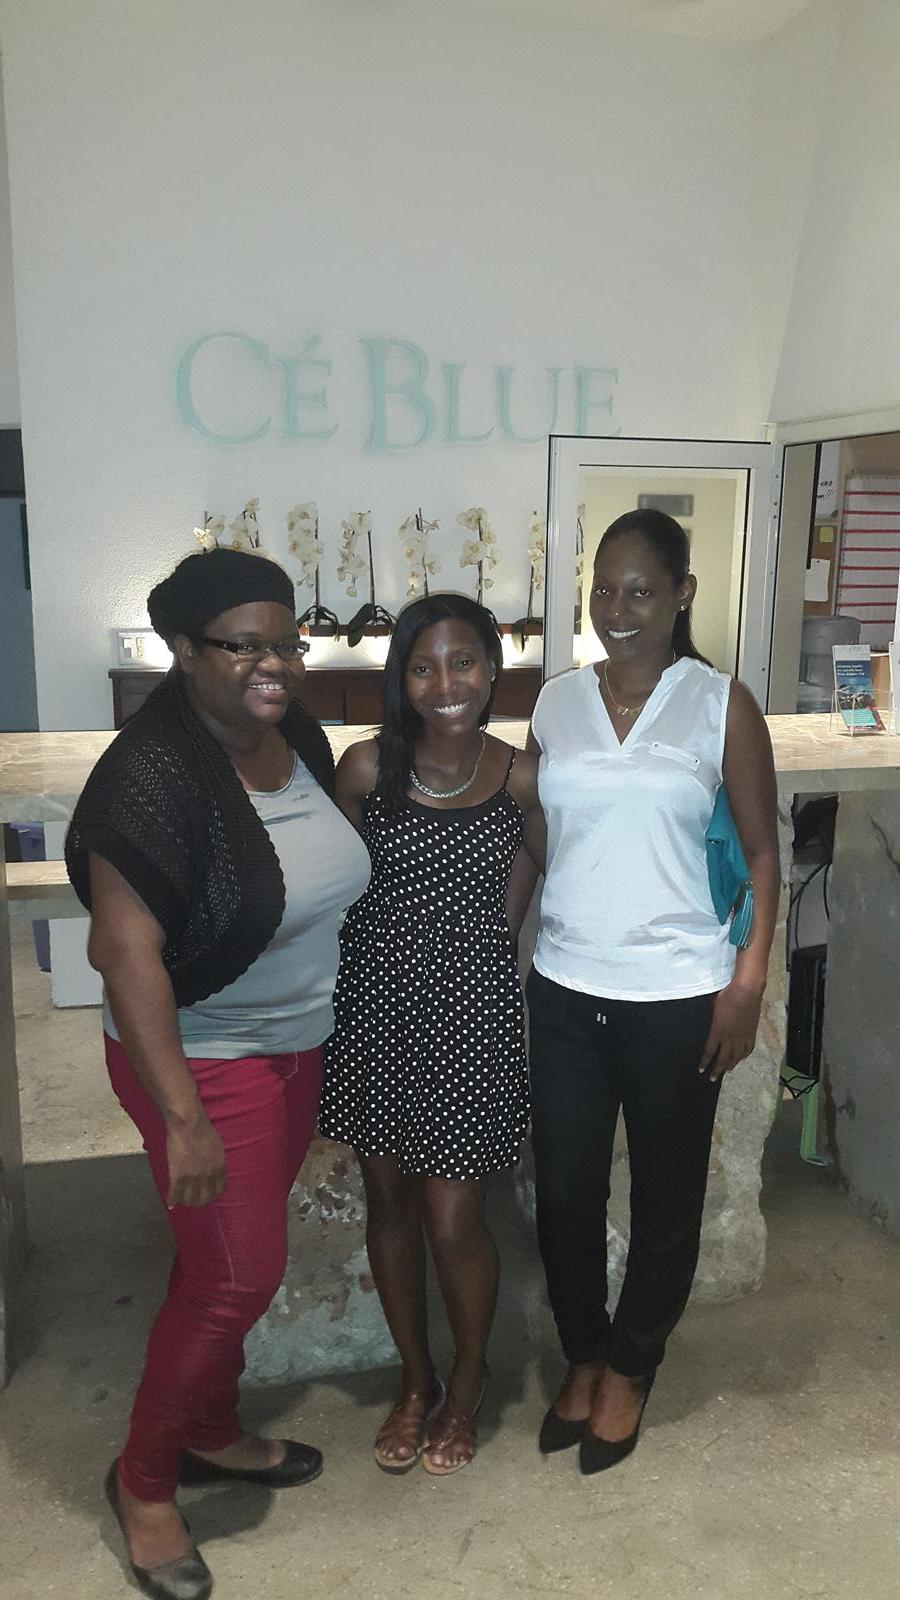 Sherma, Shauna and Shelly at CeBlue